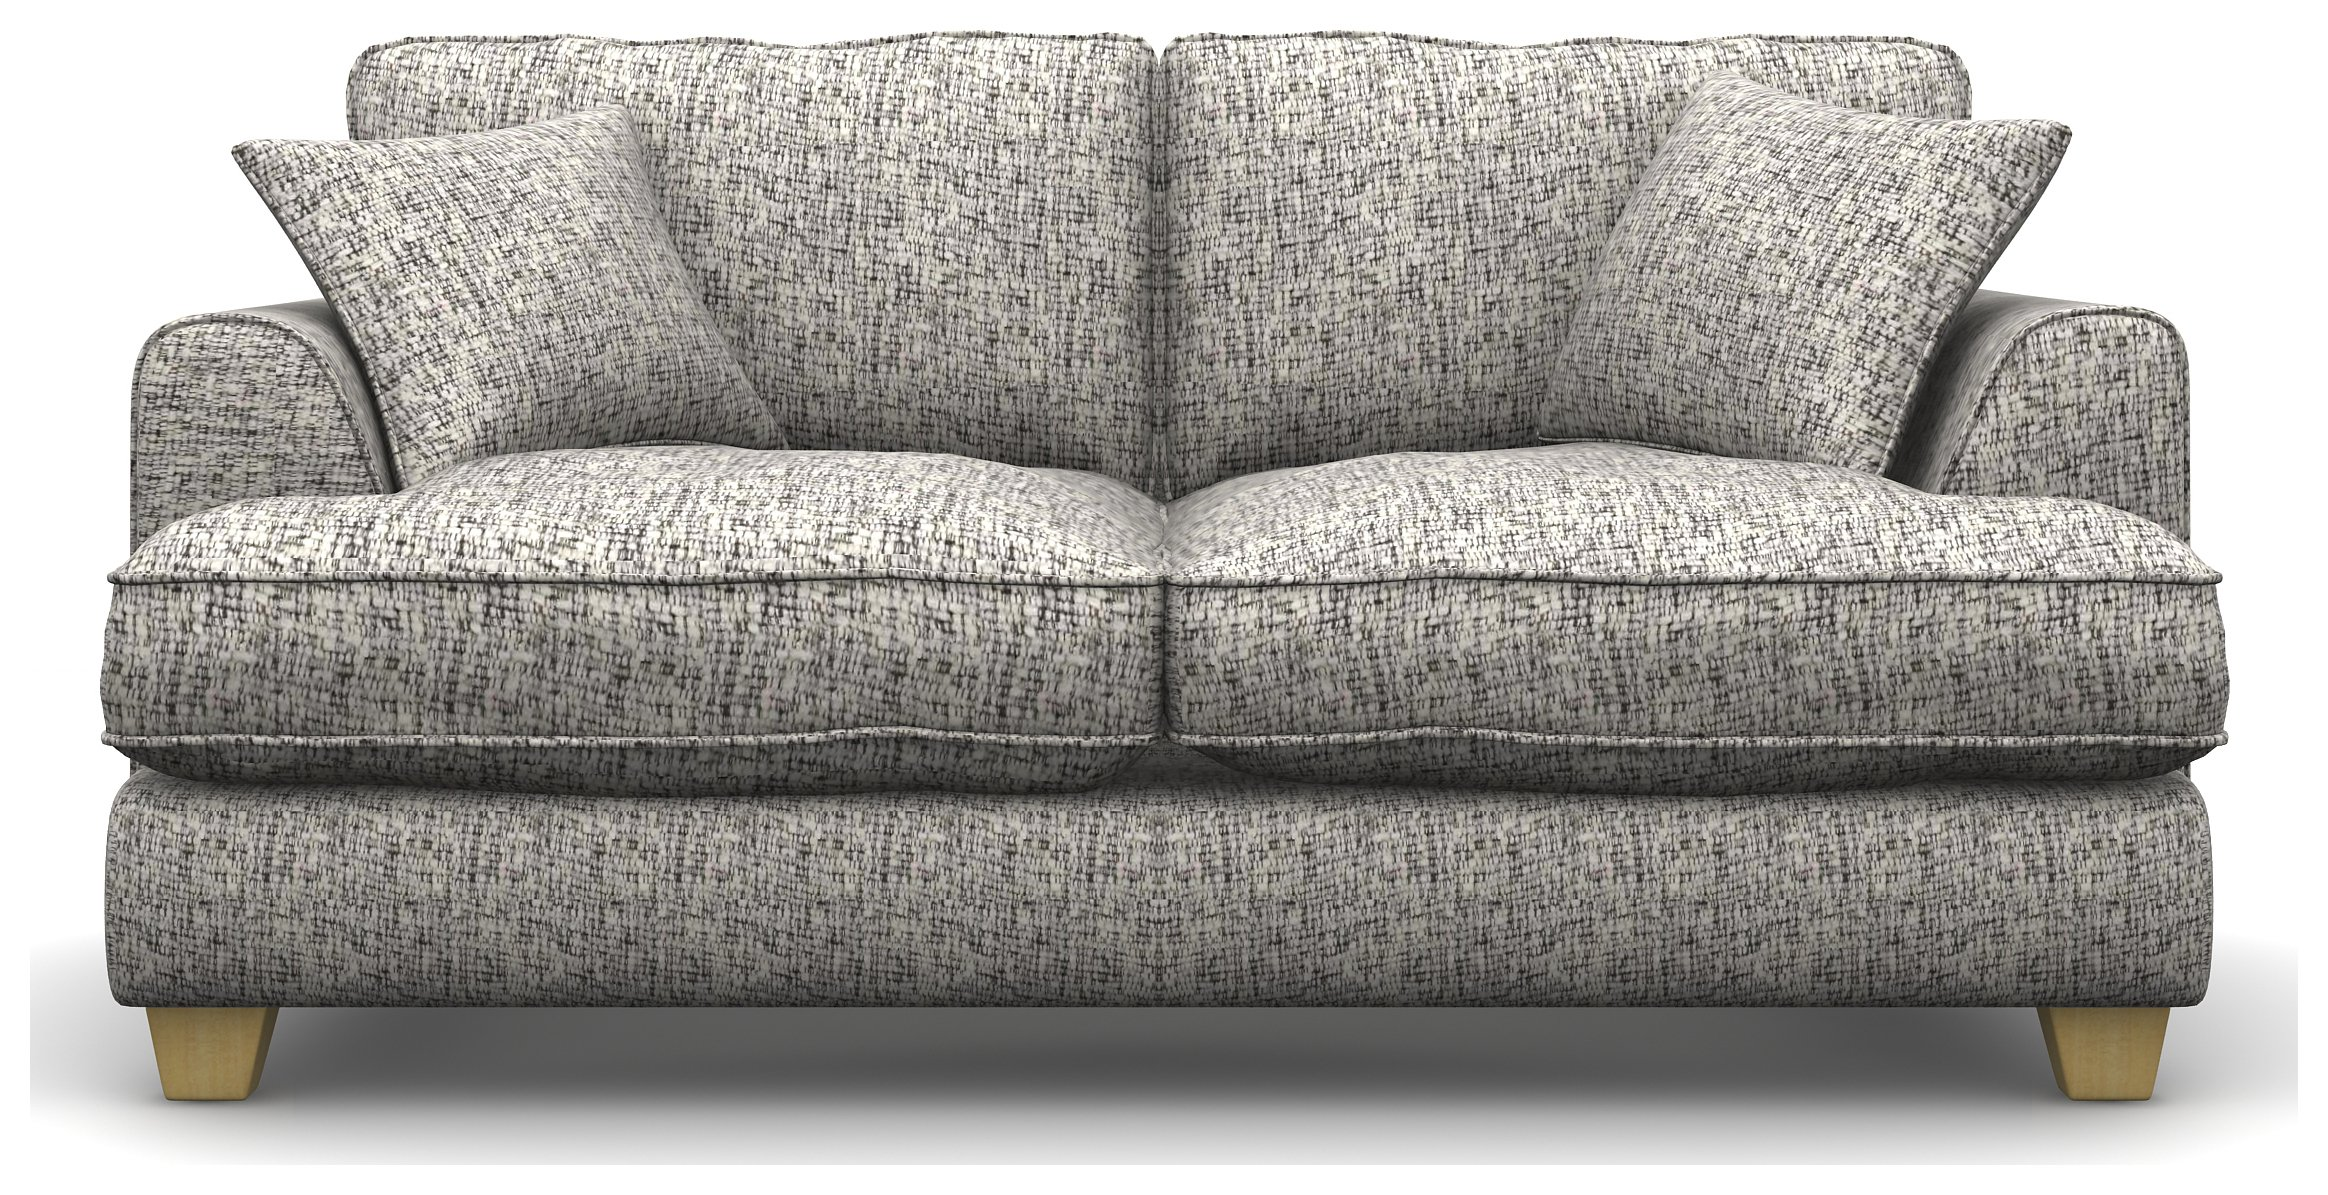 Heart of House Hampstead 2 Seat Fabric Sofa Bed - Teak.